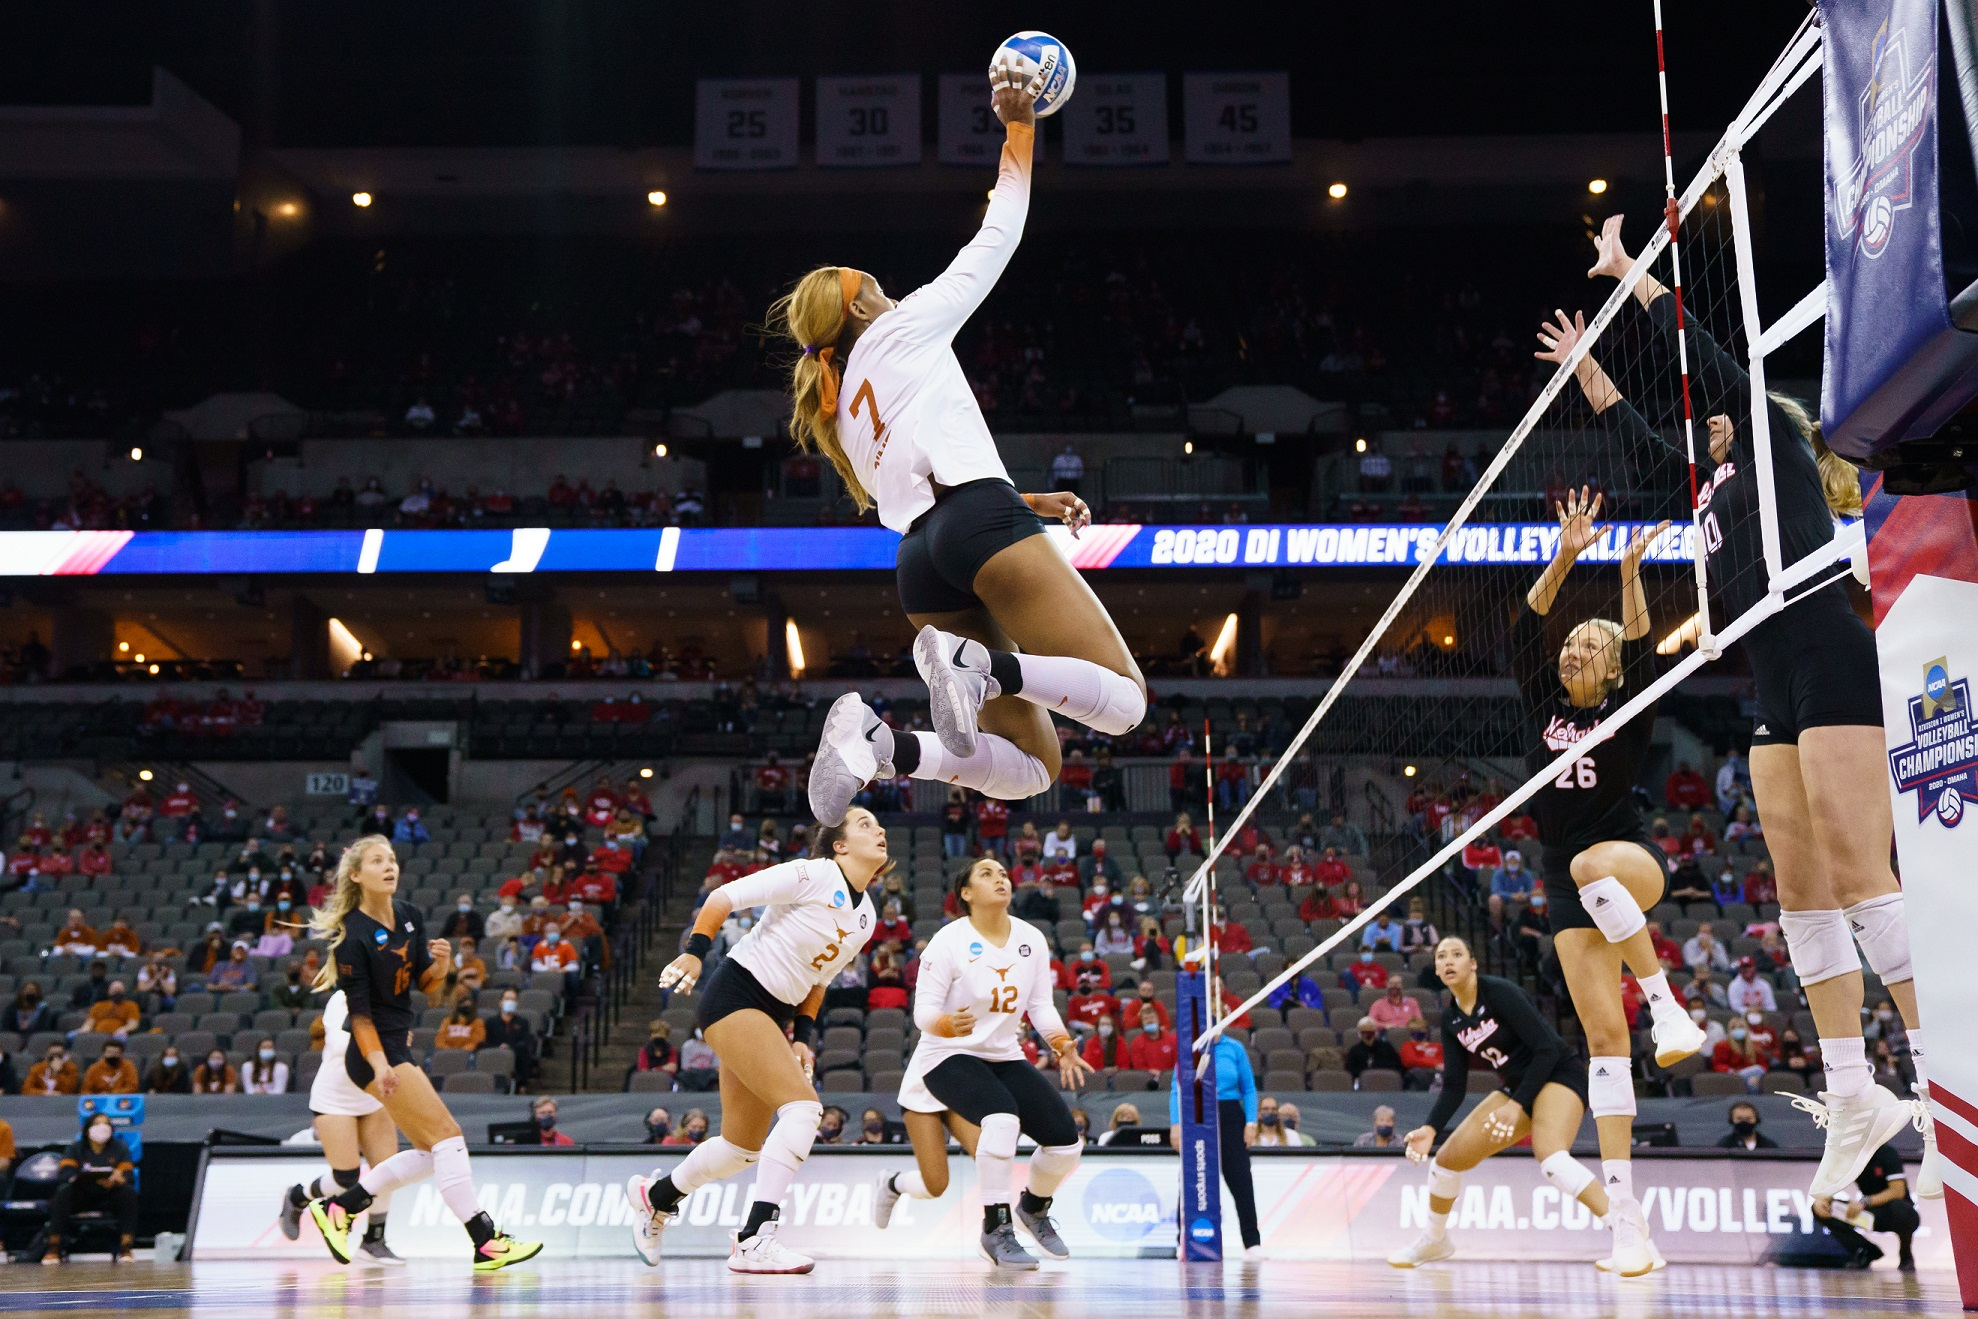 Huskers fall to Longhorns in Regional Finals